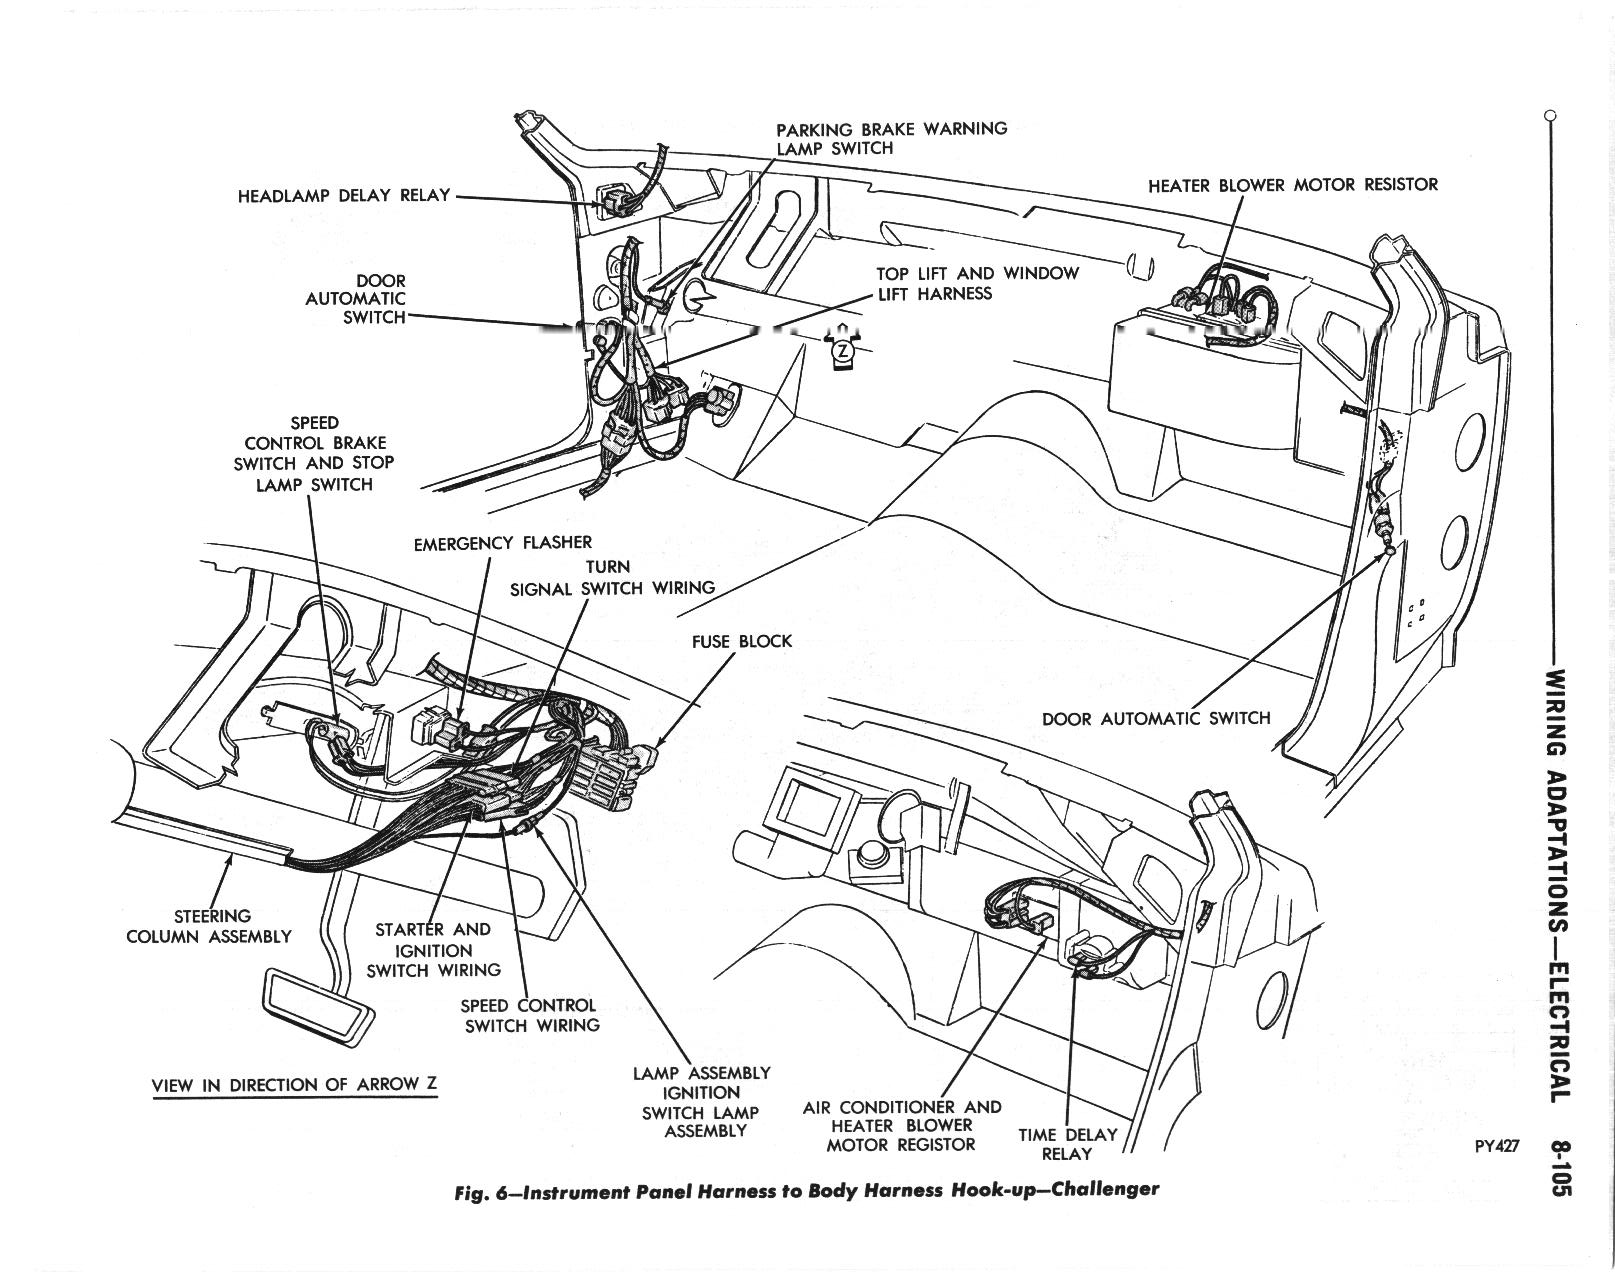 hight resolution of 1970 challenger wiring diagrams u2022 the dodge challenger message board 1970 dodge challenger ignition modules